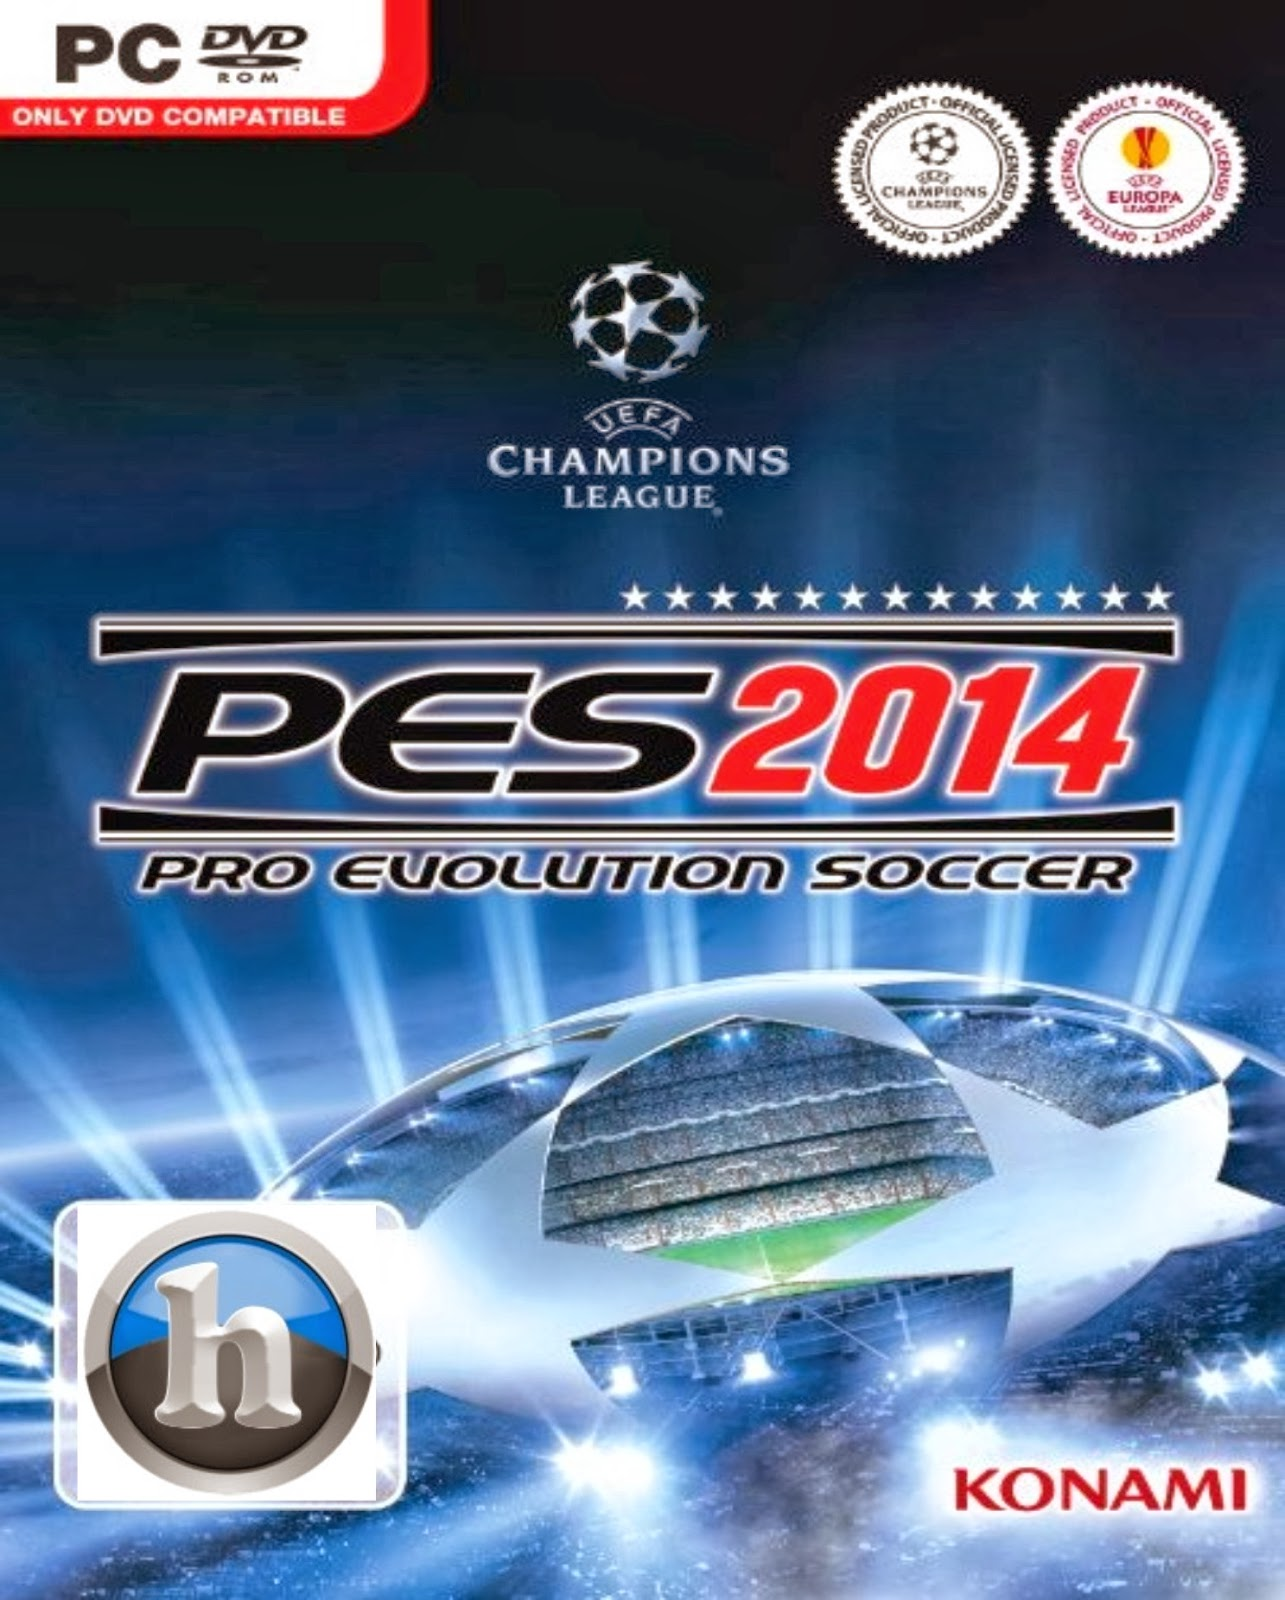 Pro Evolution Soccer ( PES ) 2014 - RELOADED Crack Free Full PC